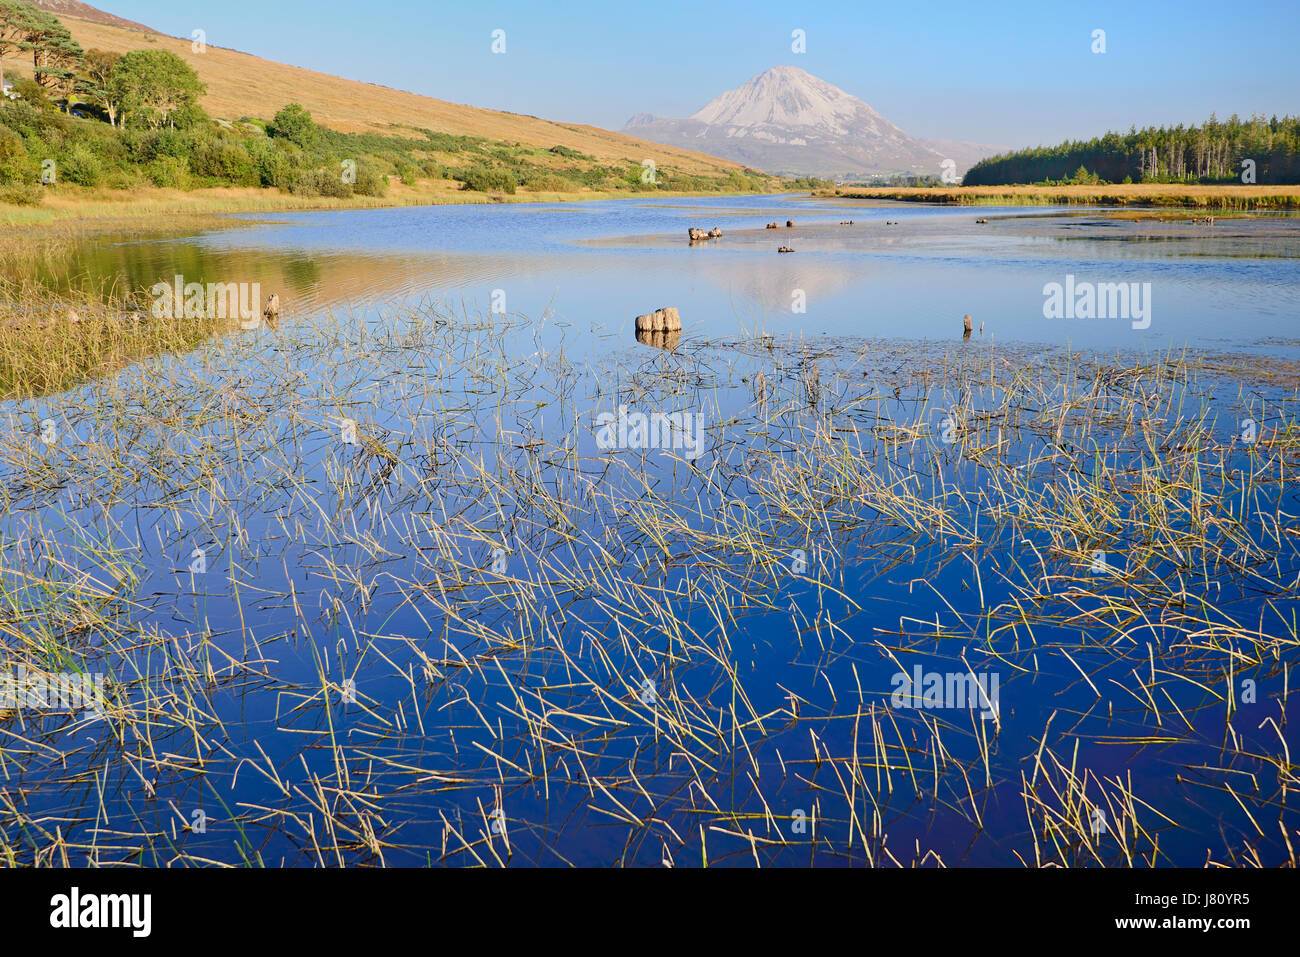 Ireland,County Donegal, Clady River with Mount Errigal in the distance. - Stock Image